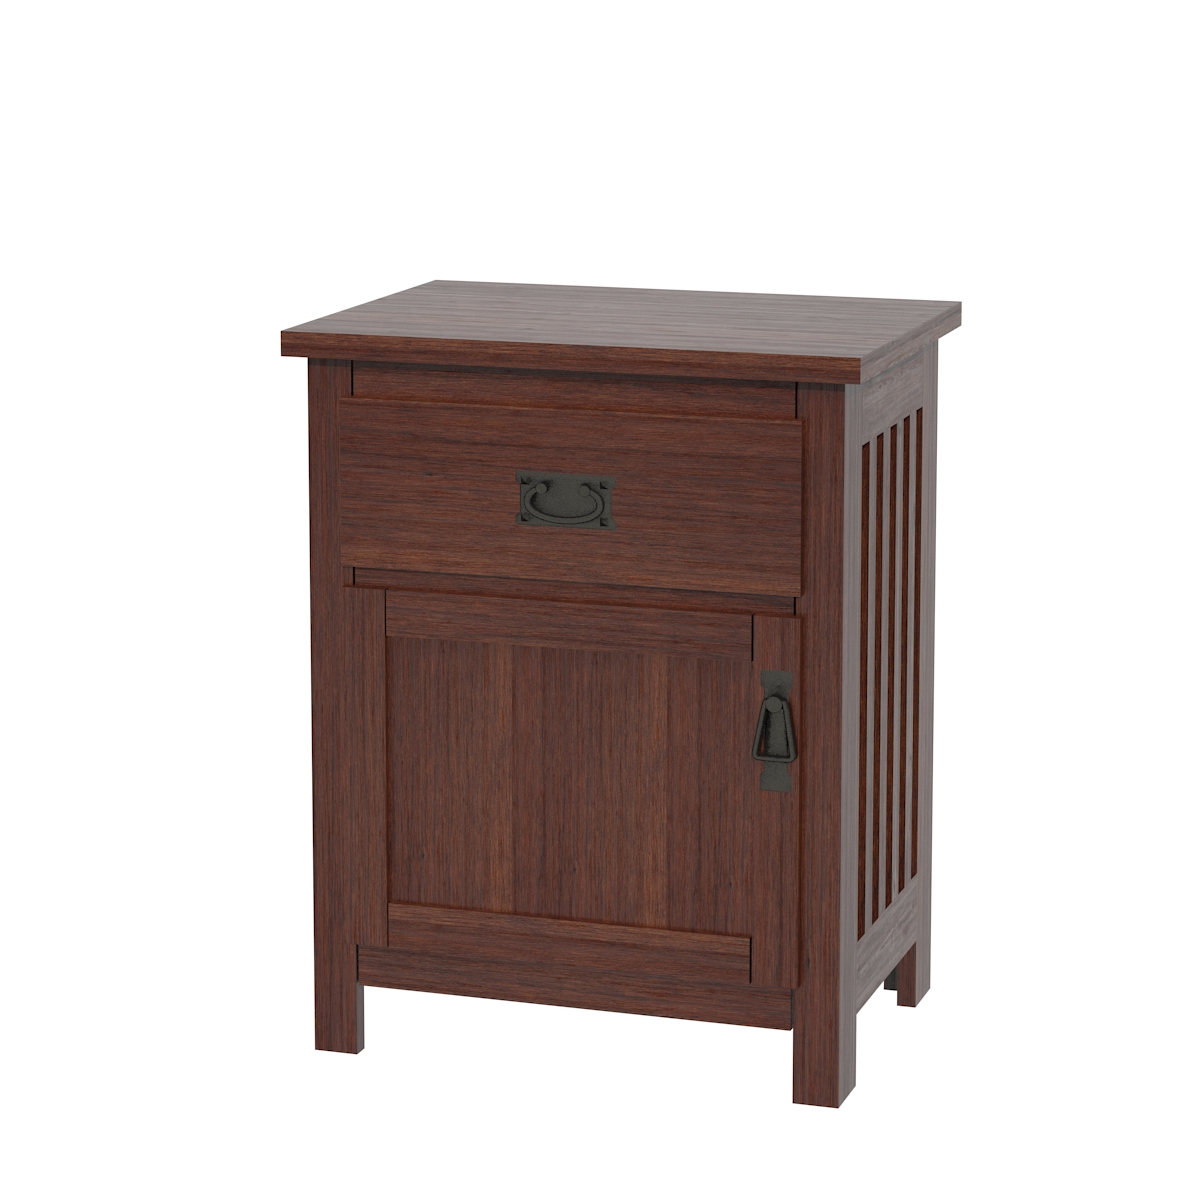 Mission Nightstand with Door Chocolate Cherry ...  sc 1 st  Erik Organic & Mission Nightstand With Doors | Solid Wood Nightstand in the Mission ...